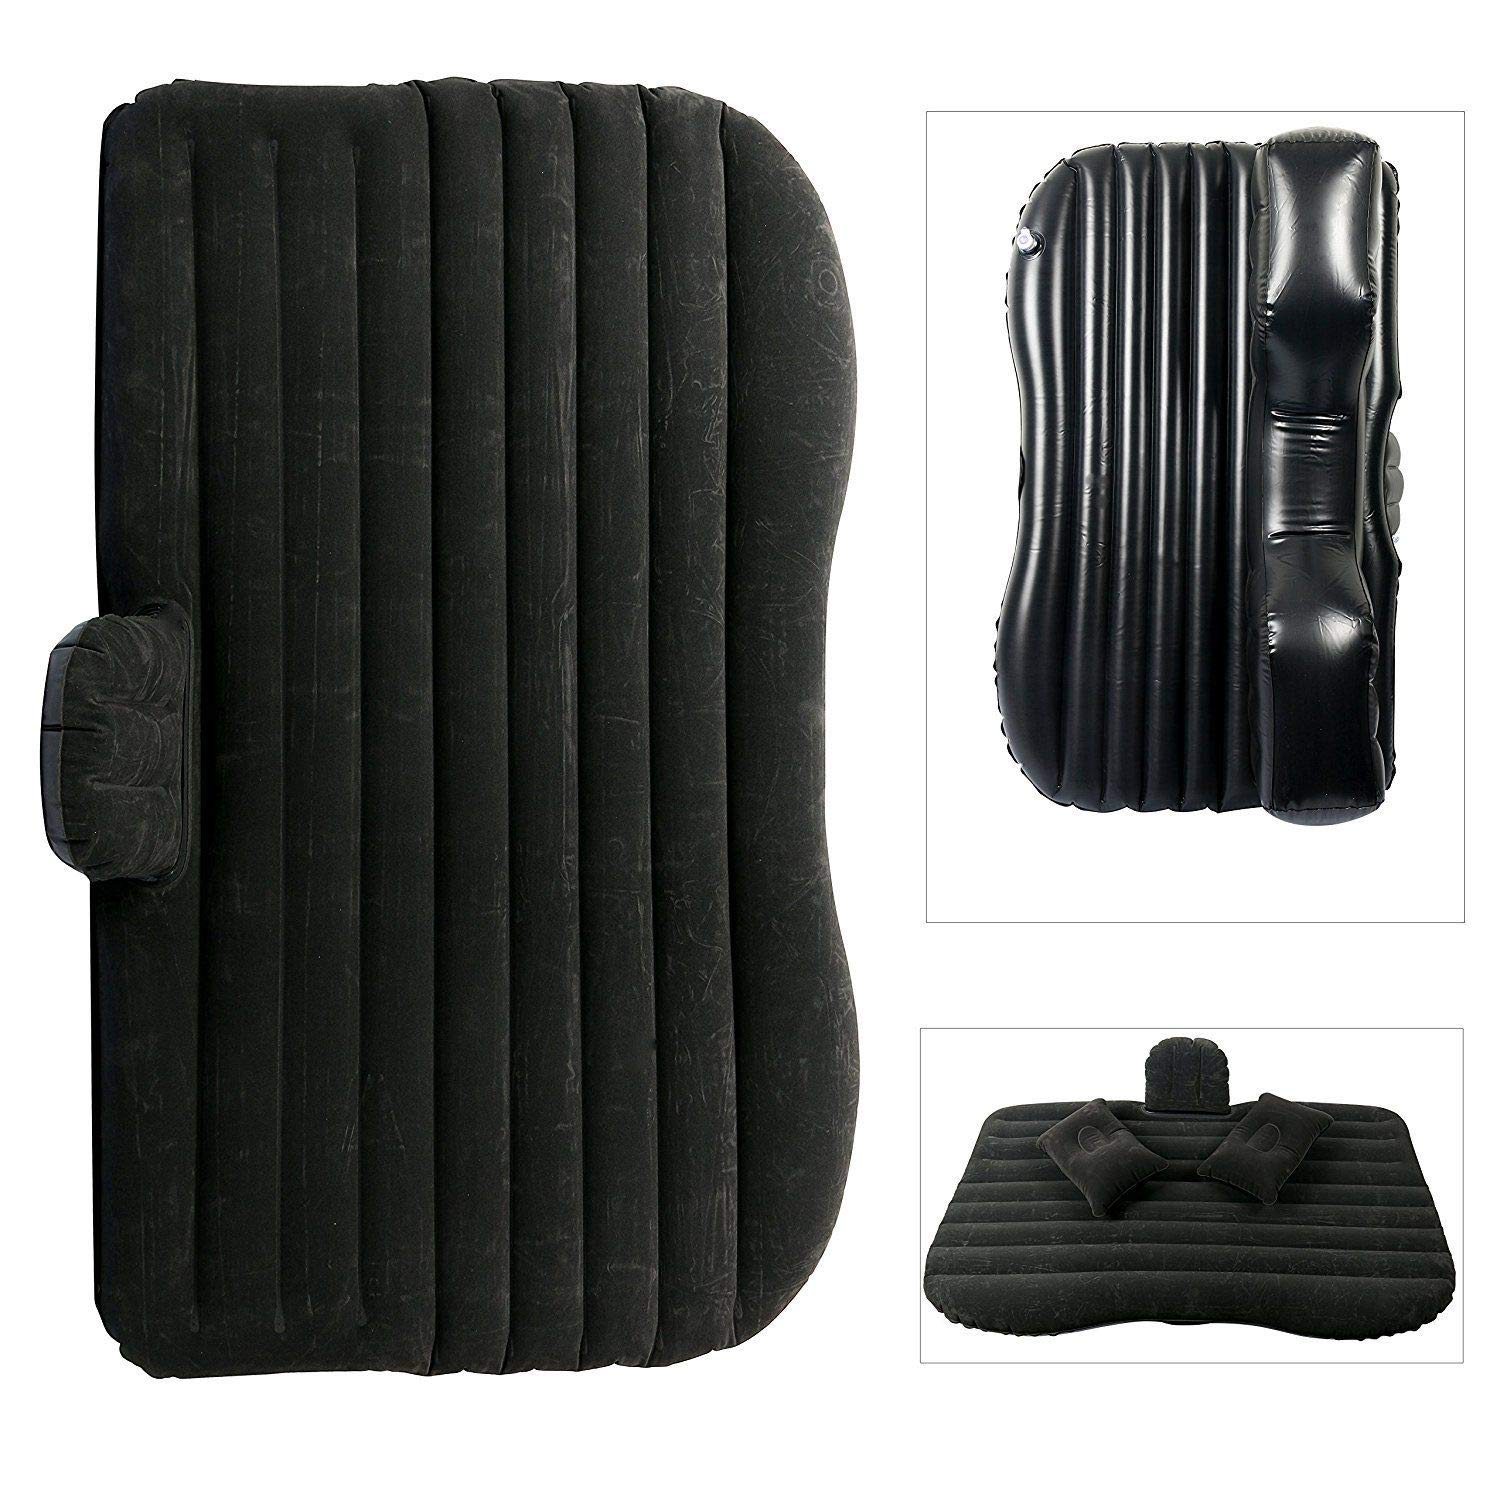 Mami-Team Car Air Mattress Bed Inflatable Travel Back Seat Sleep Rest Mat Pillow Pump Lightweight Folded Cushion SUV Weight: 2.6 kg/5.7lbs Inflated Size 53.54 x 33.07 x 17.32 Inches (Black) by Mami-Team (Image #2)